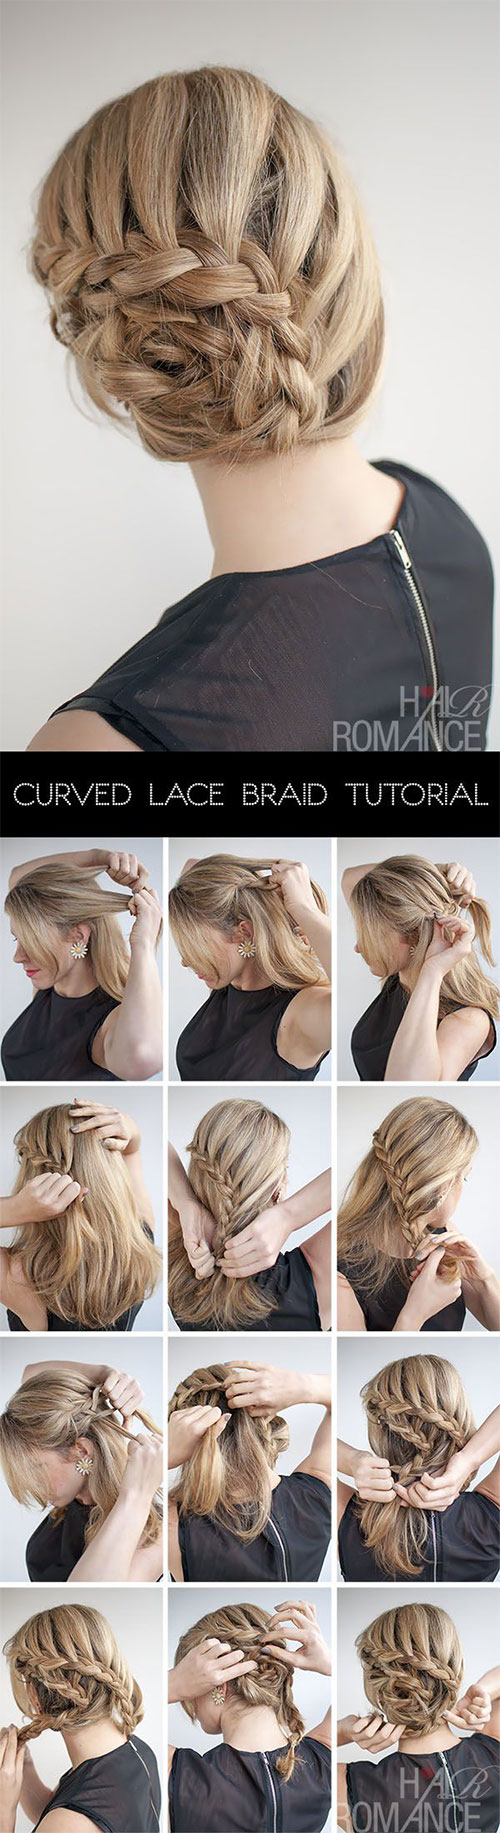 20-Easy-Step-By-Step-Summer-Braids-Style-Tutorials-For-Beginners-2015-5